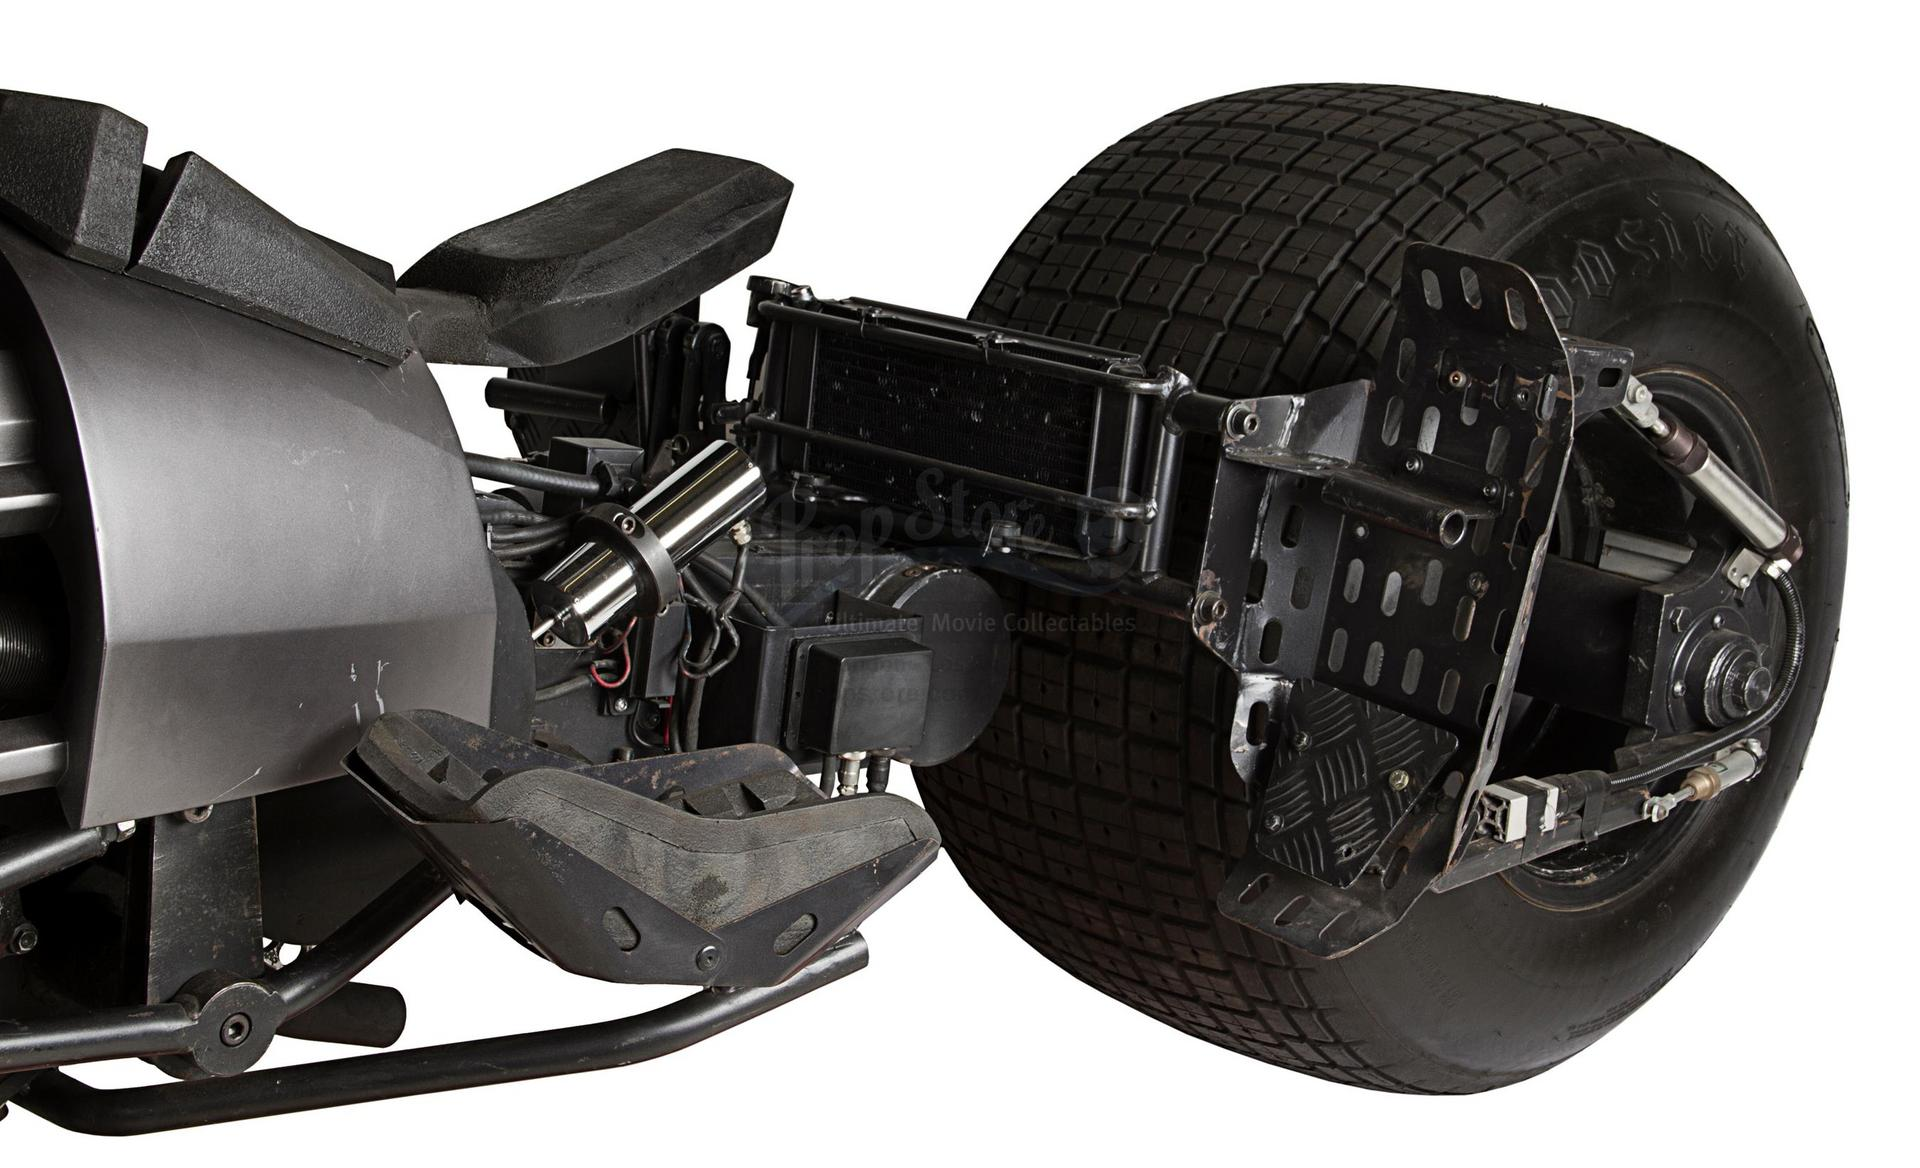 dark-knight-trilogys-batpod-motorcycle-is-up-for-auction_1